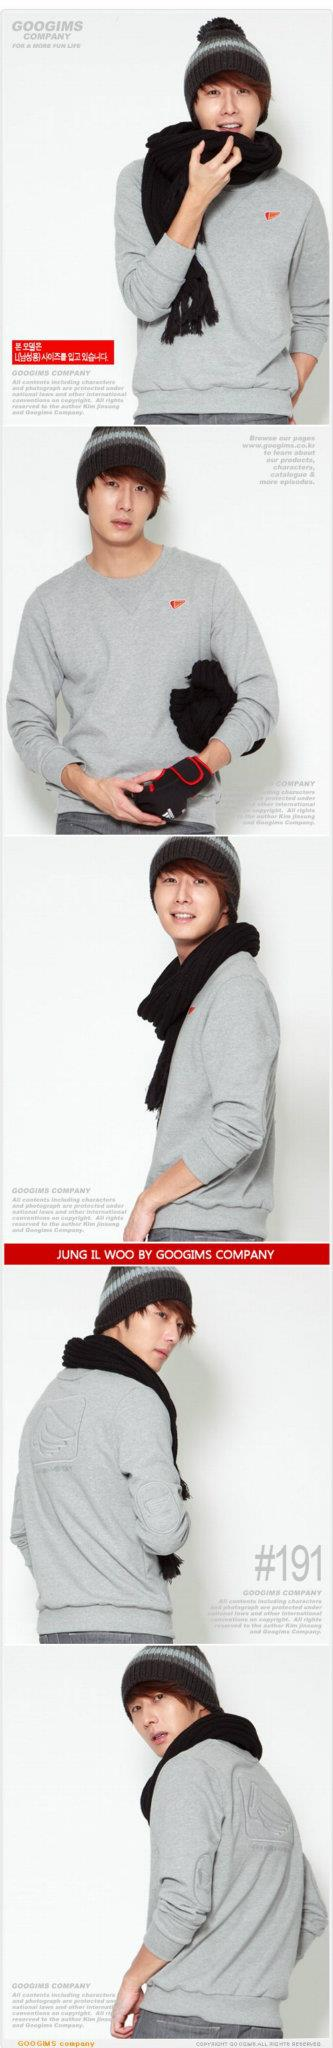 2011 10 Jung II-woo for Googims. Part 3 00010